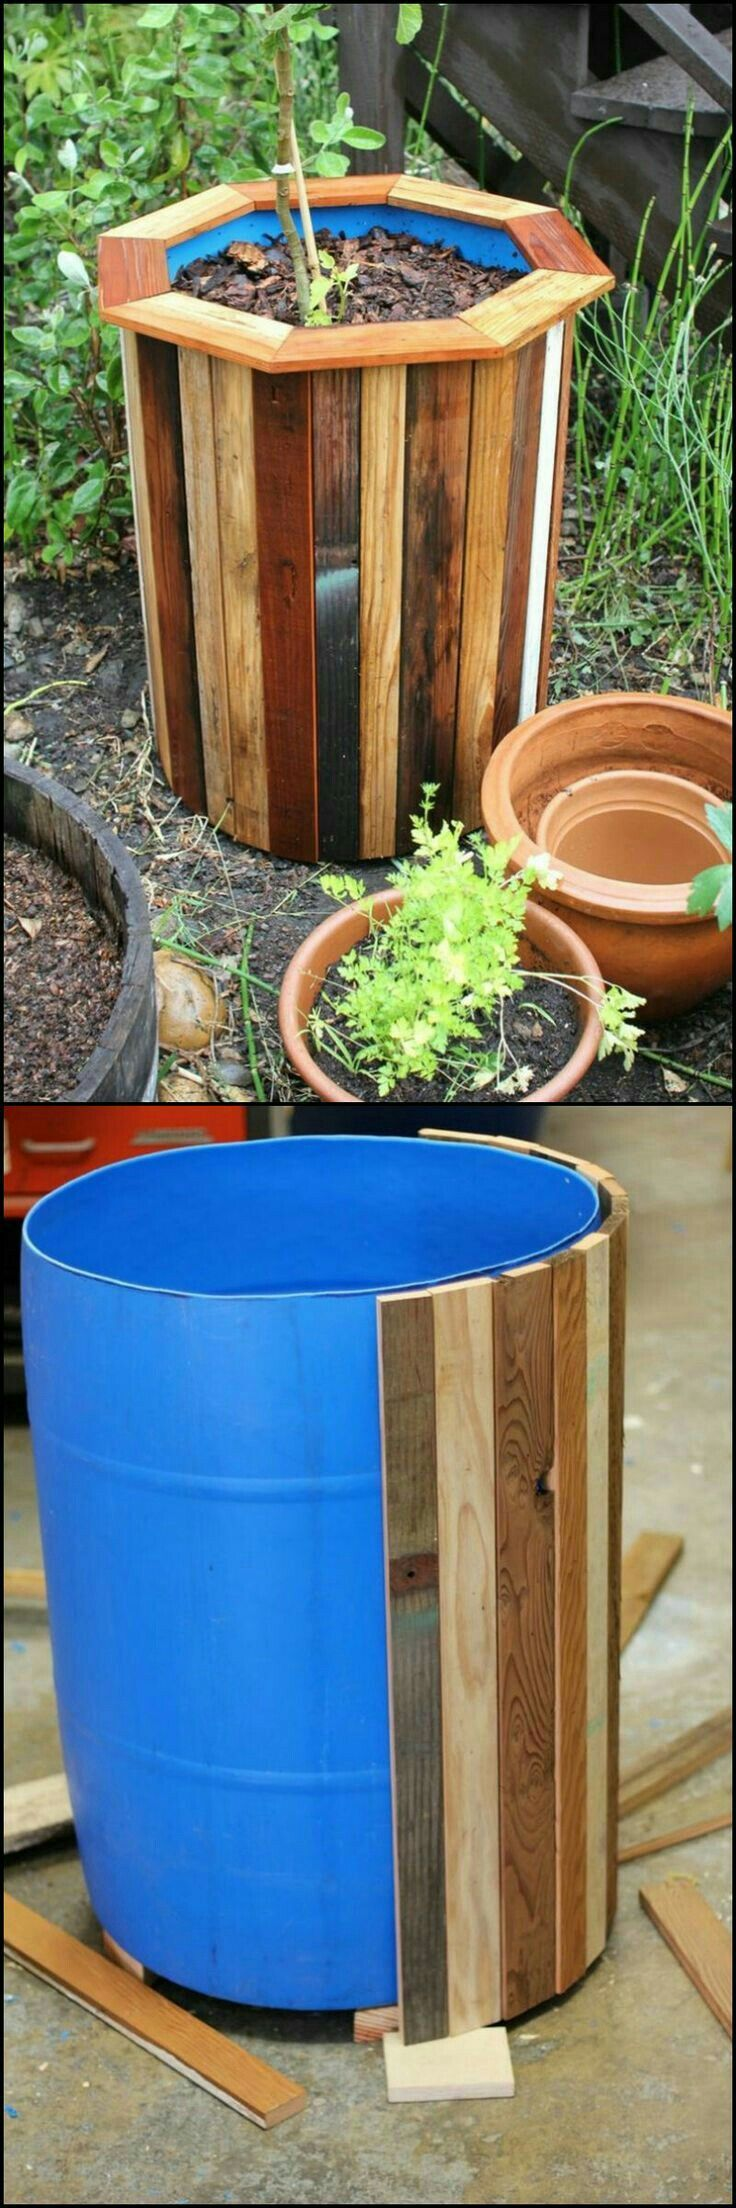 DIY Plastic Barrel Planter Plastic barrel planter